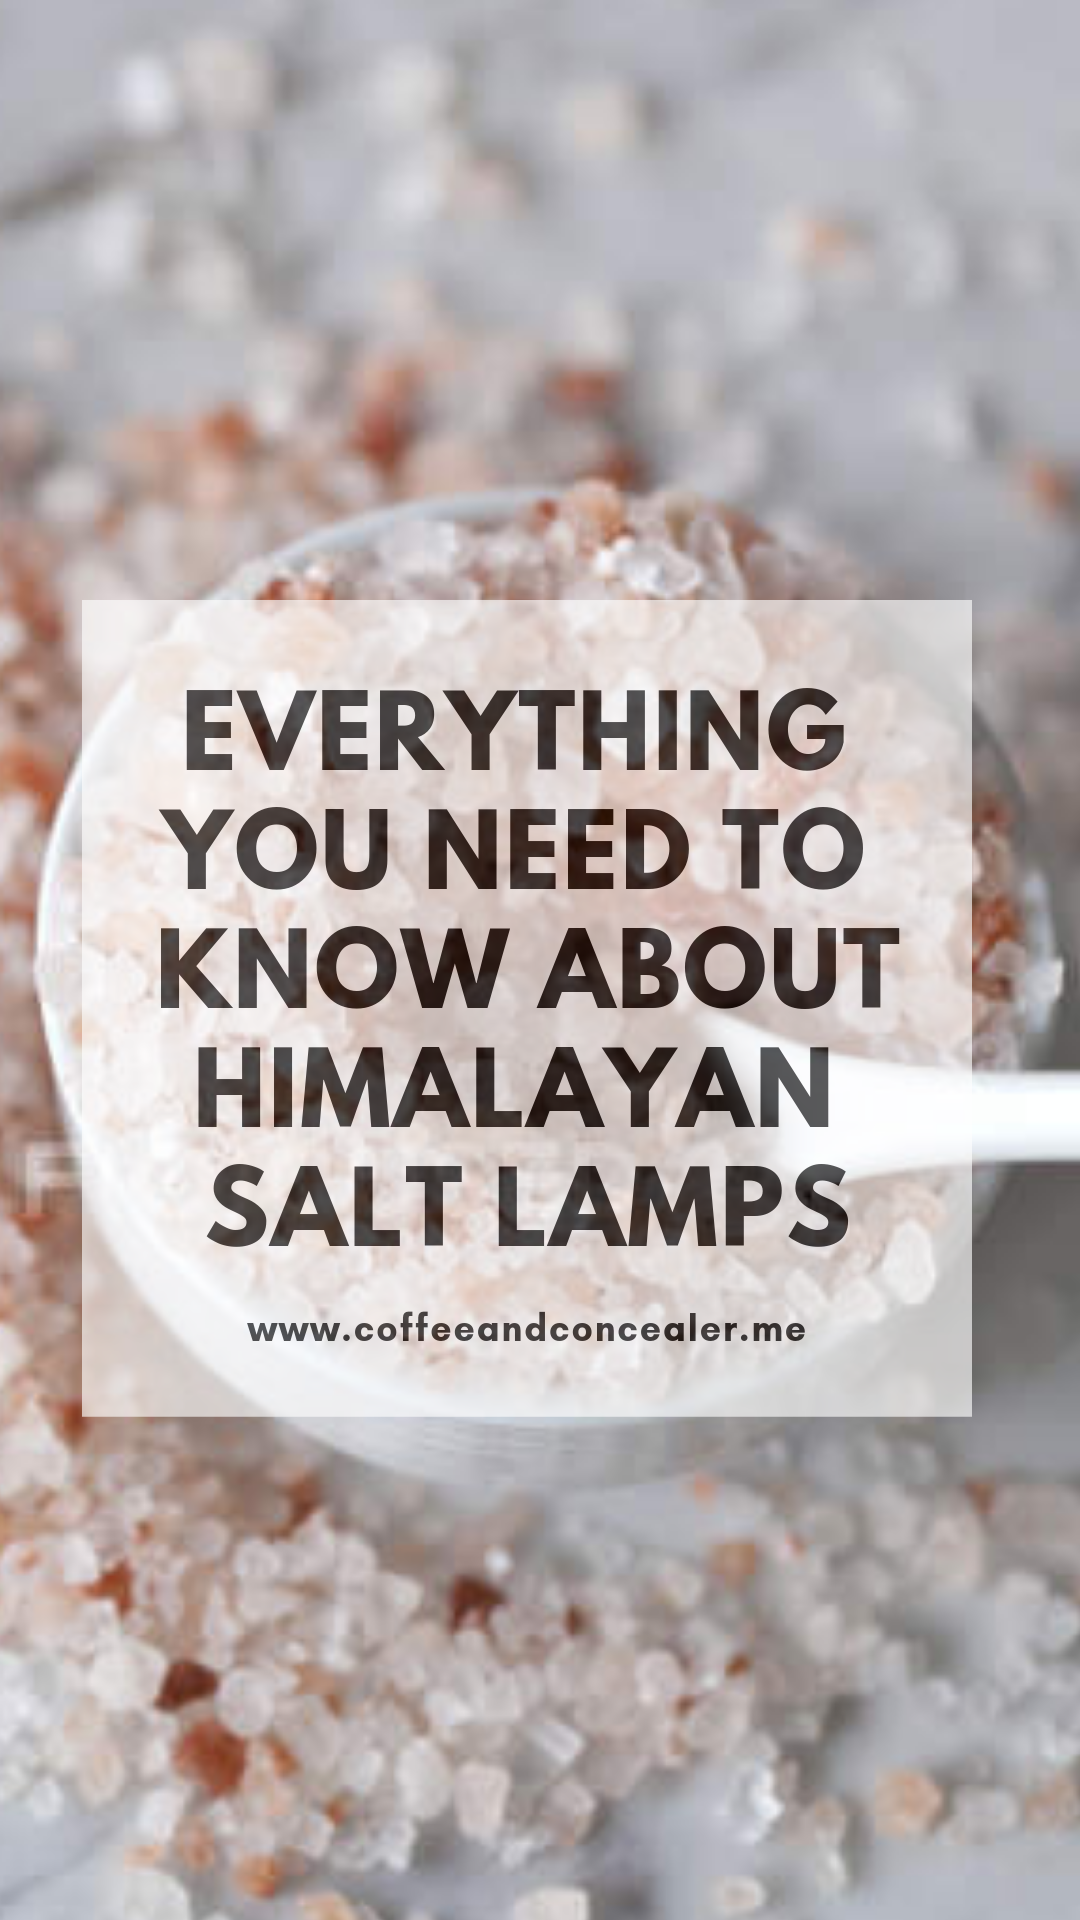 Salt Lamps Are The Antidepressant You Never Knew You Needed